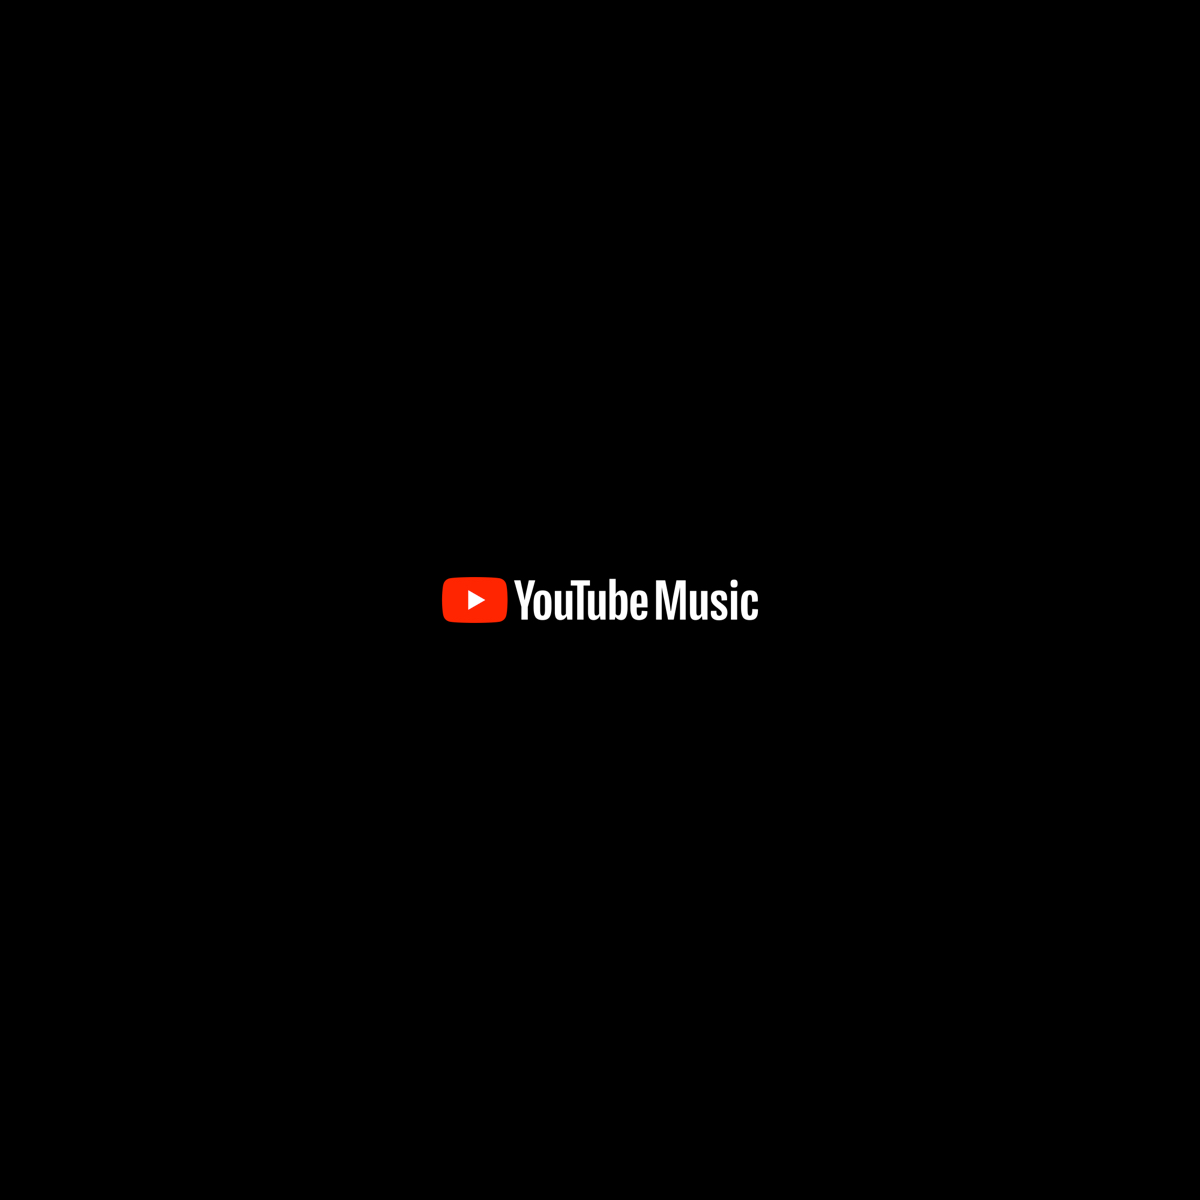 Music Premium - YouTube